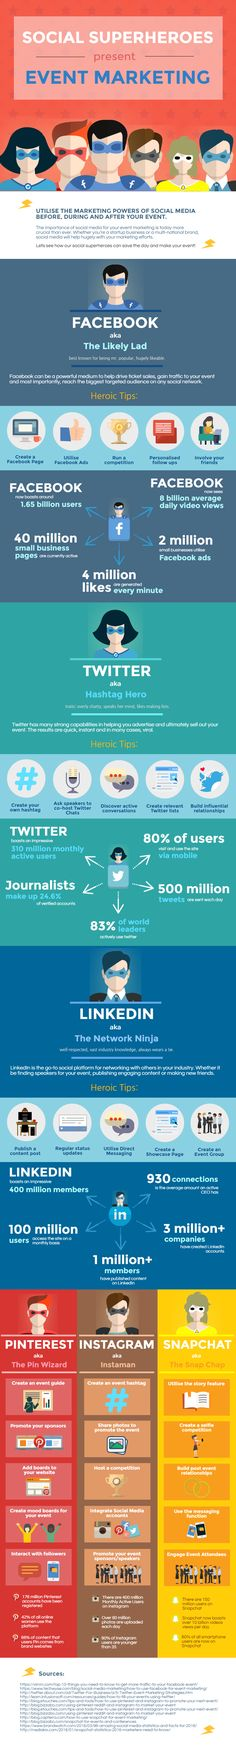 How to Utilize Social Media for Event Marketing [Infographic] | Social Media Today